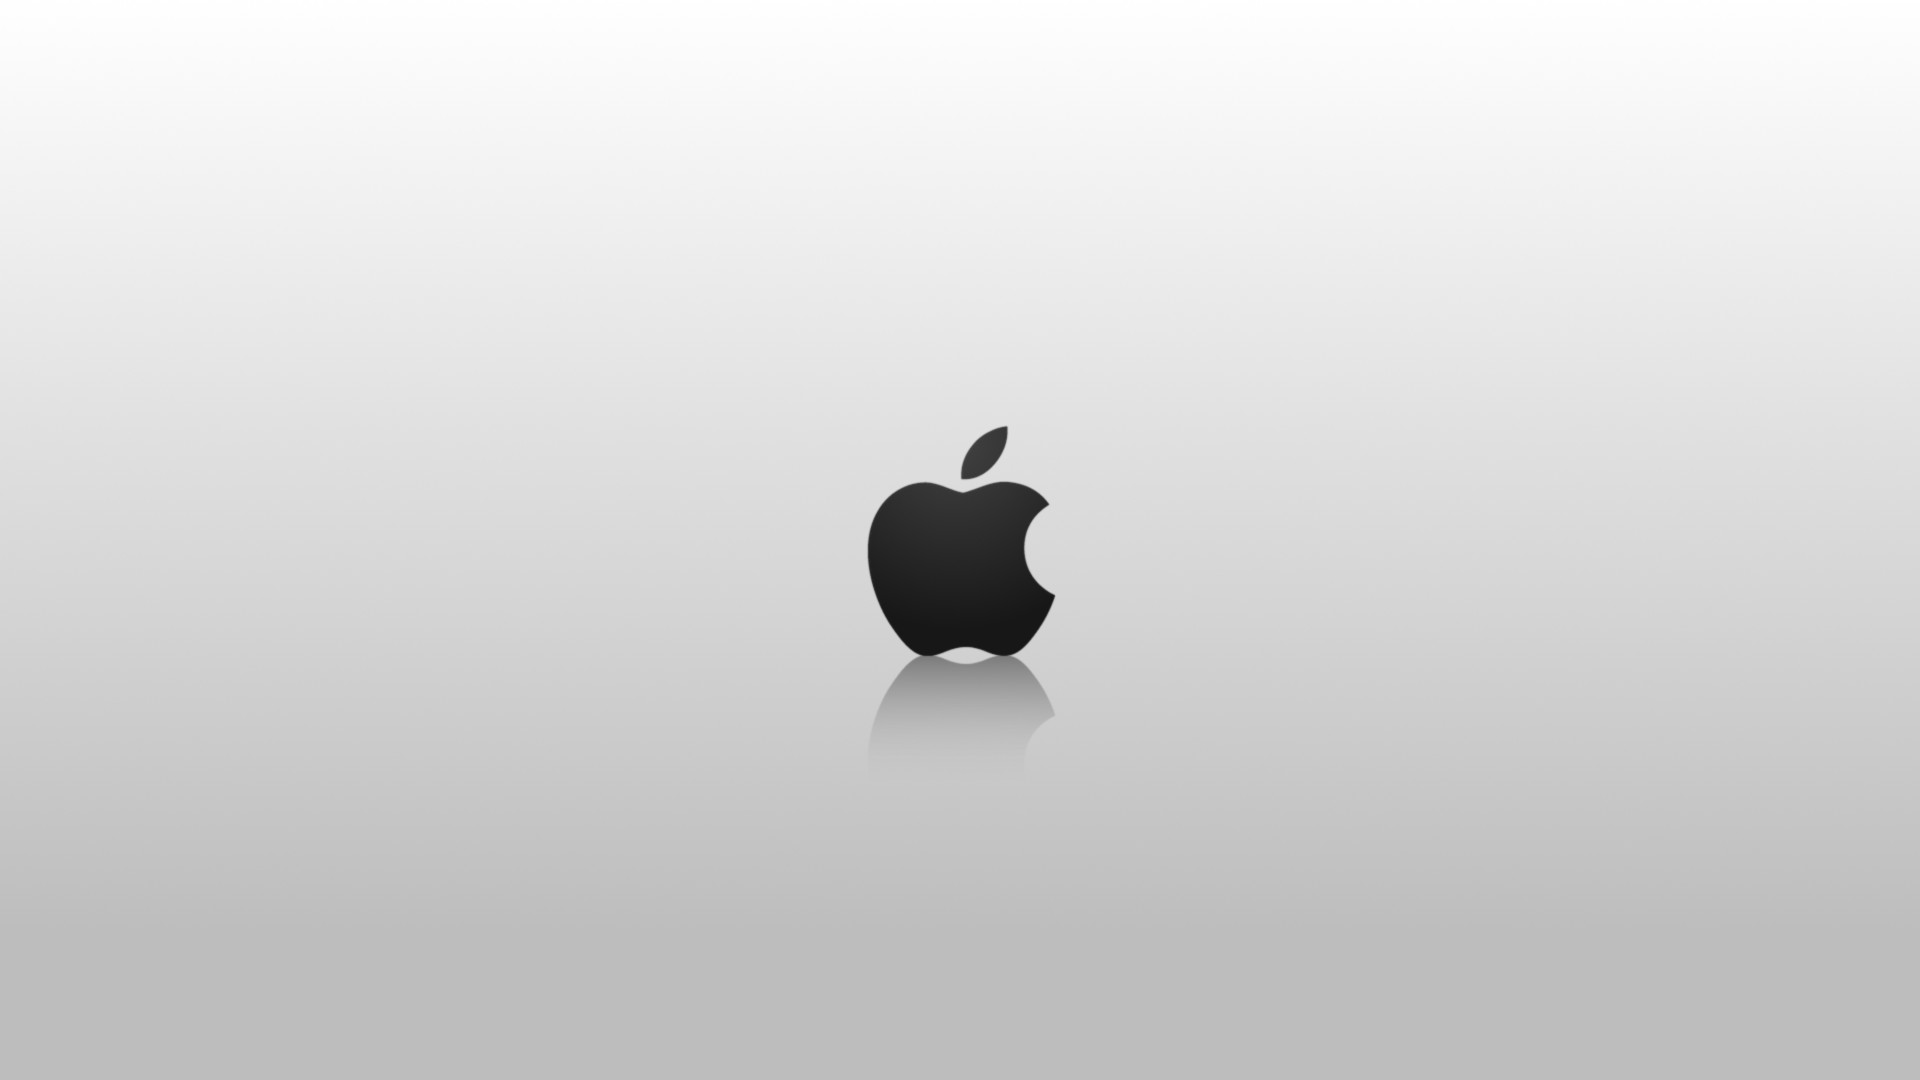 apple background wallpapers (80+ background pictures)